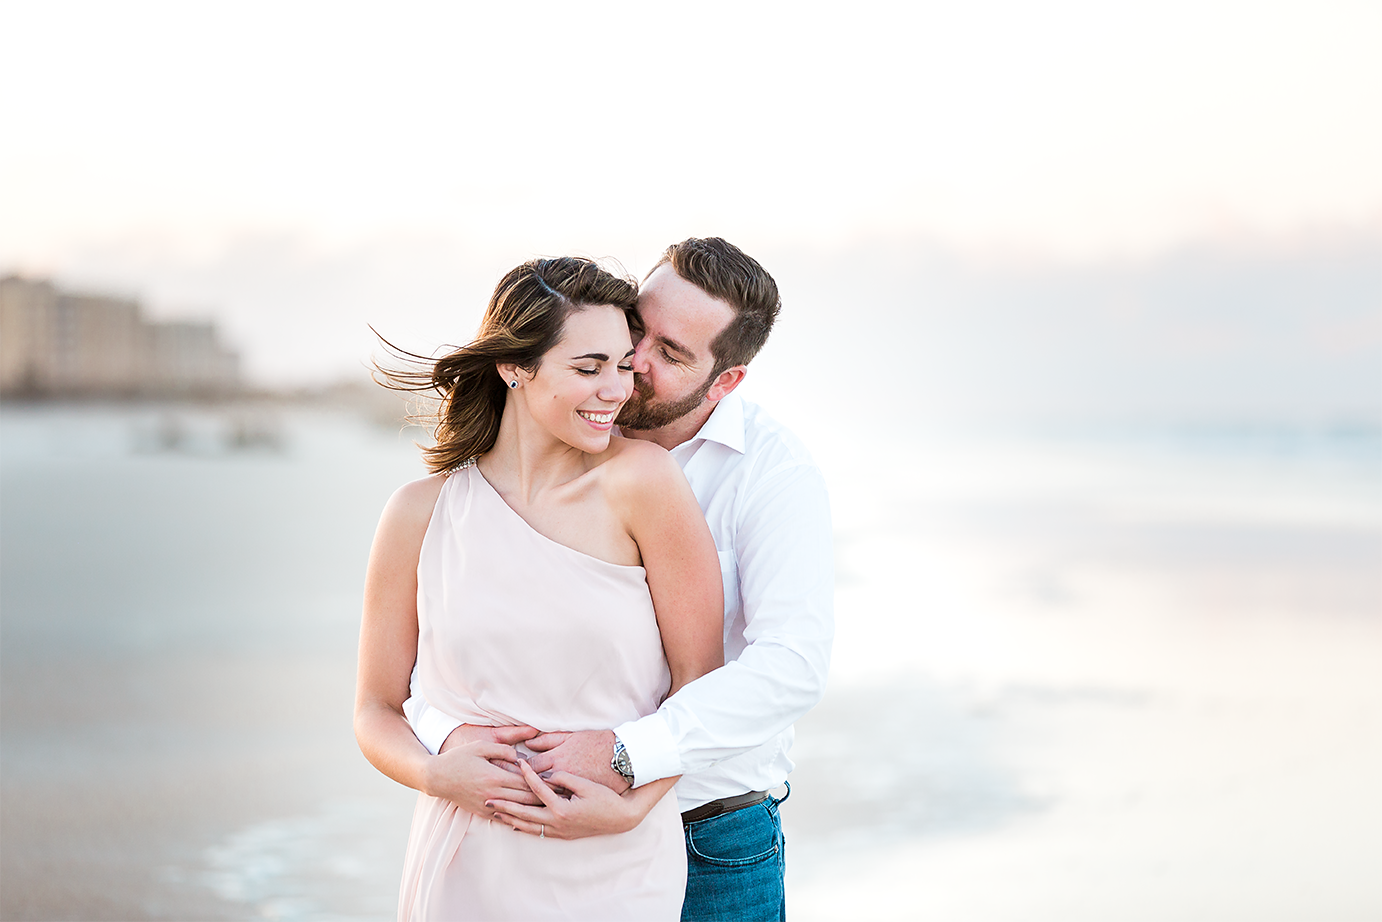 engagement picture inspiration. beach photoshoot in st.augustine